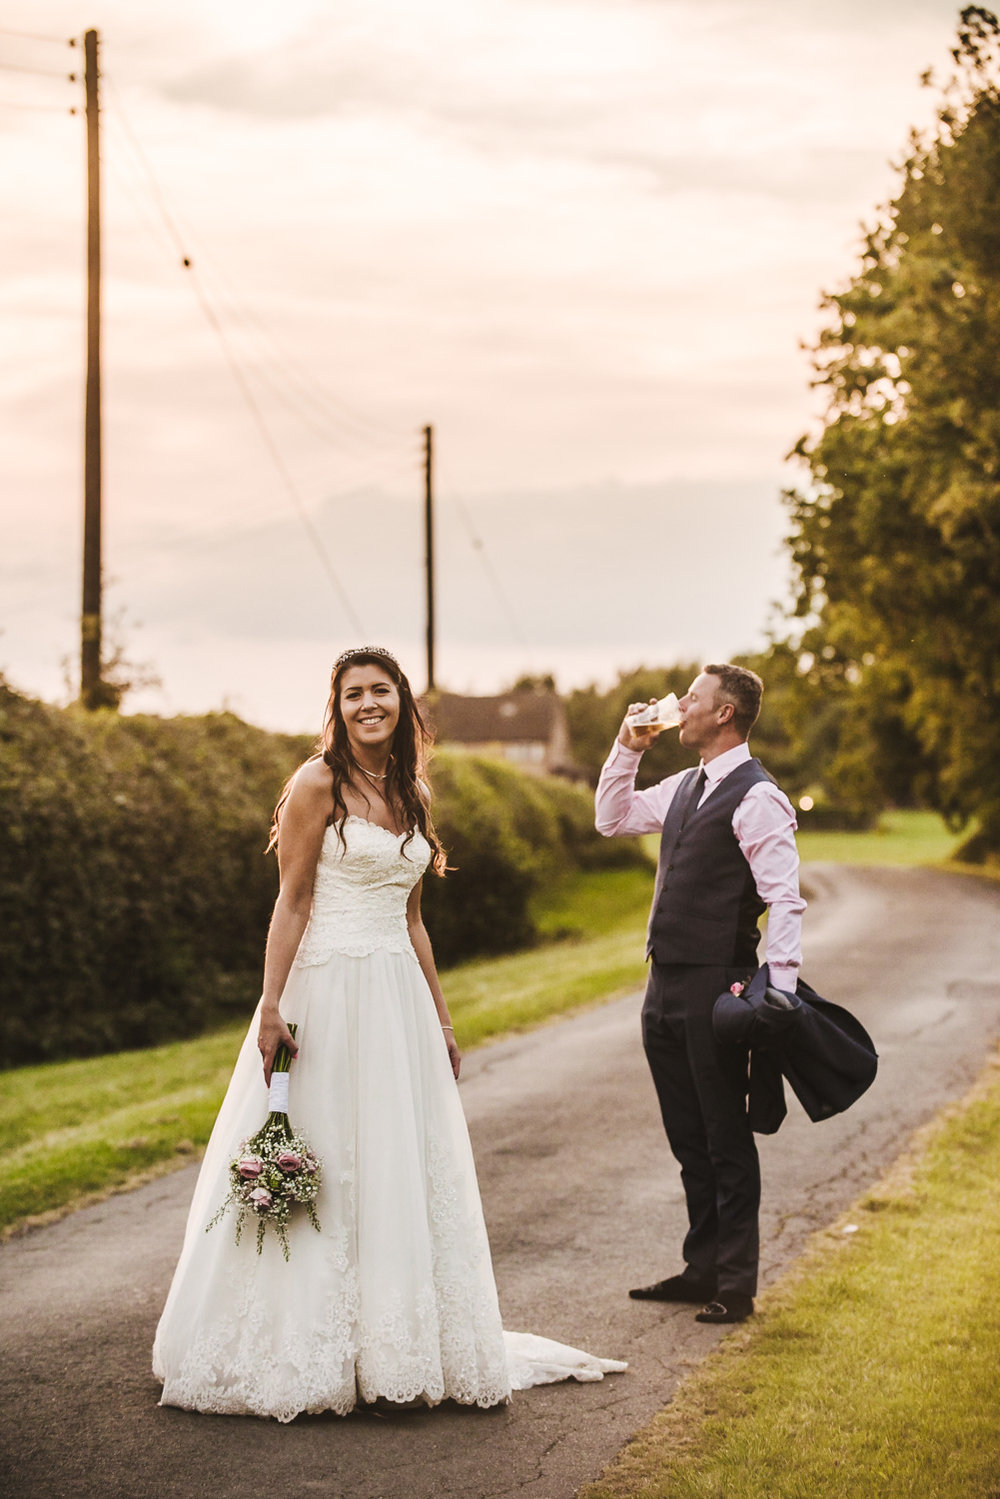 beer drinking groom reportage wedding